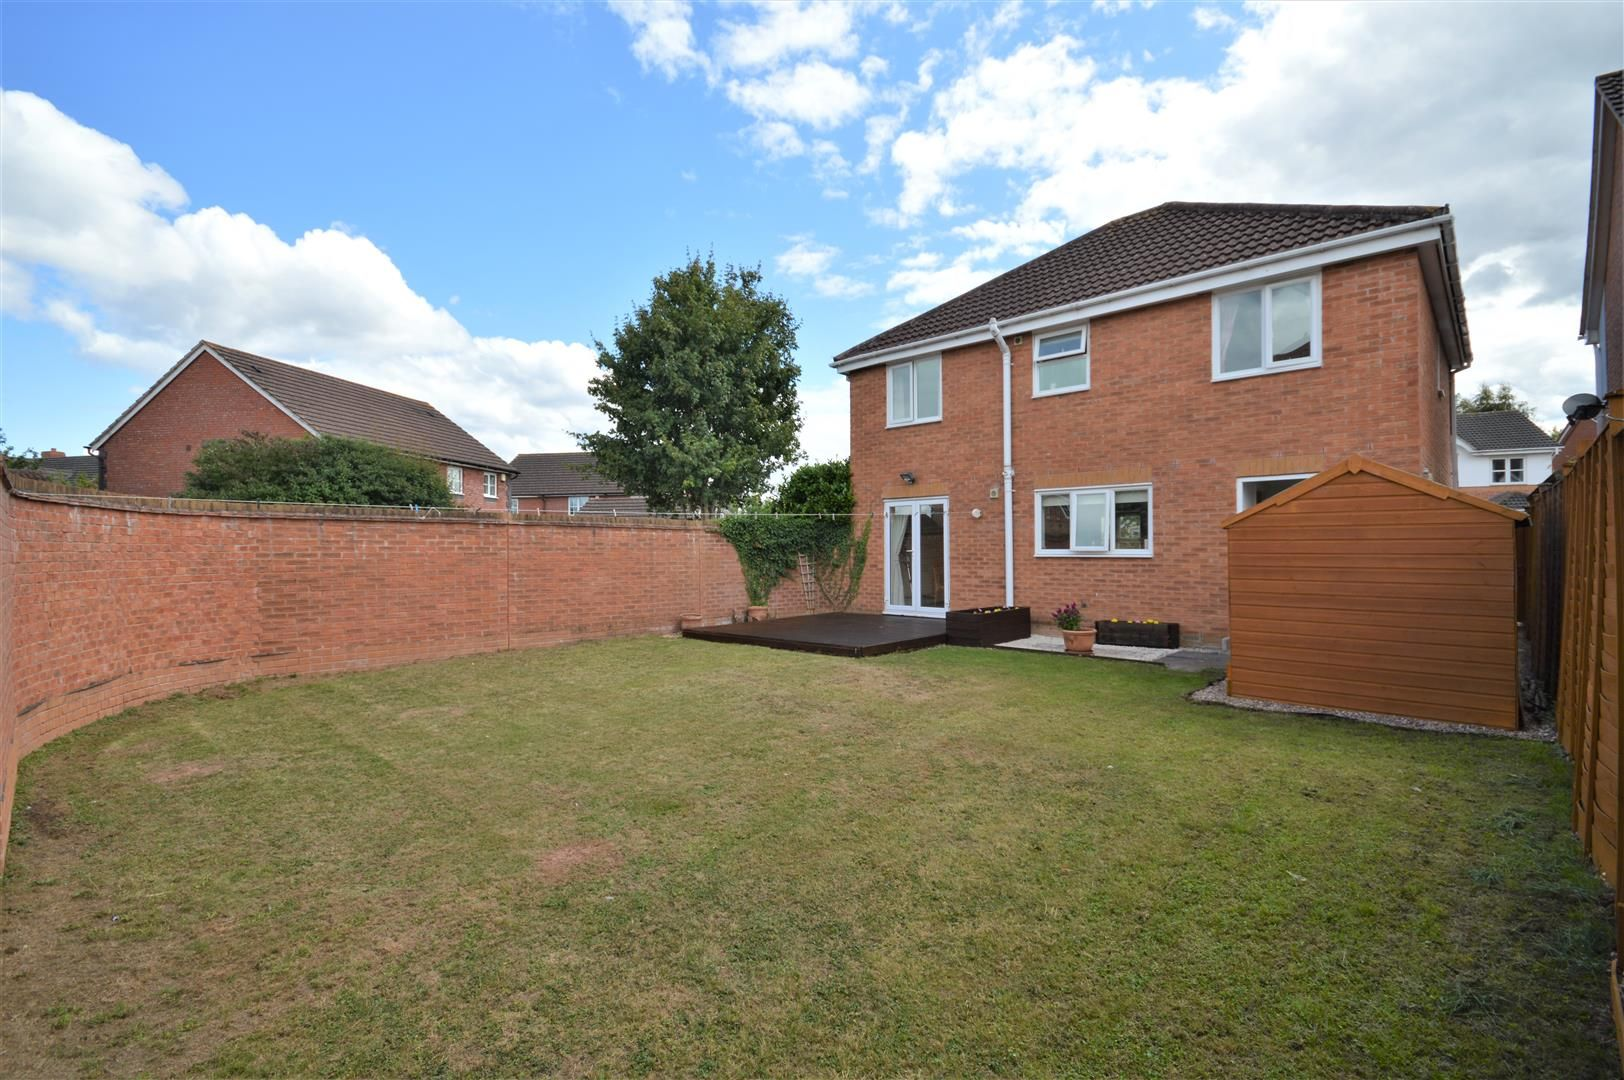 4 bed detached for sale in Belmont  - Property Image 6